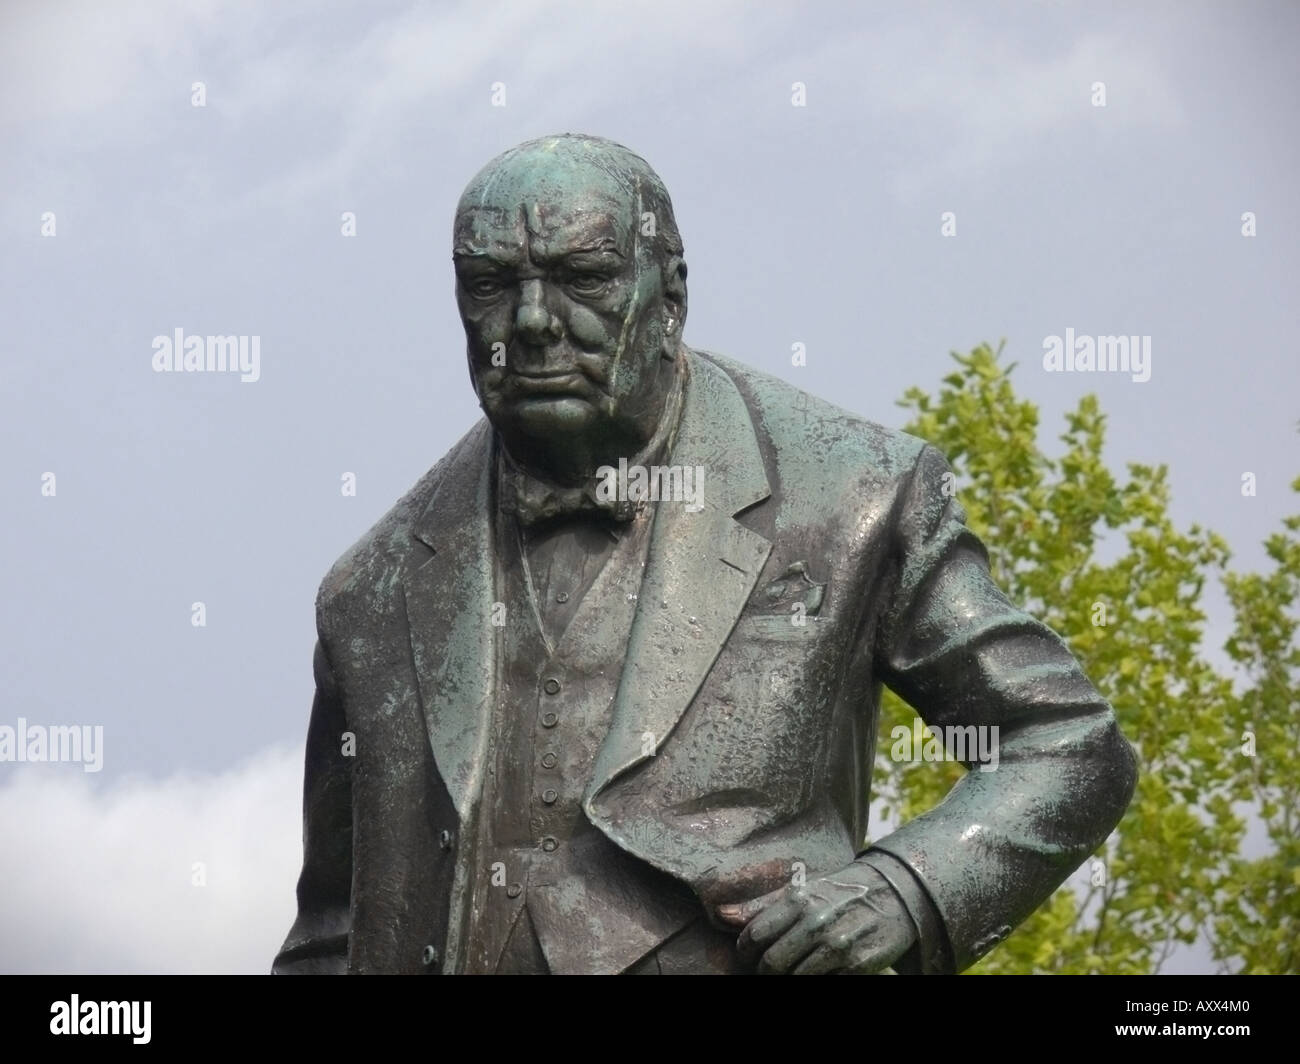 sir winston churchill - Stock Image